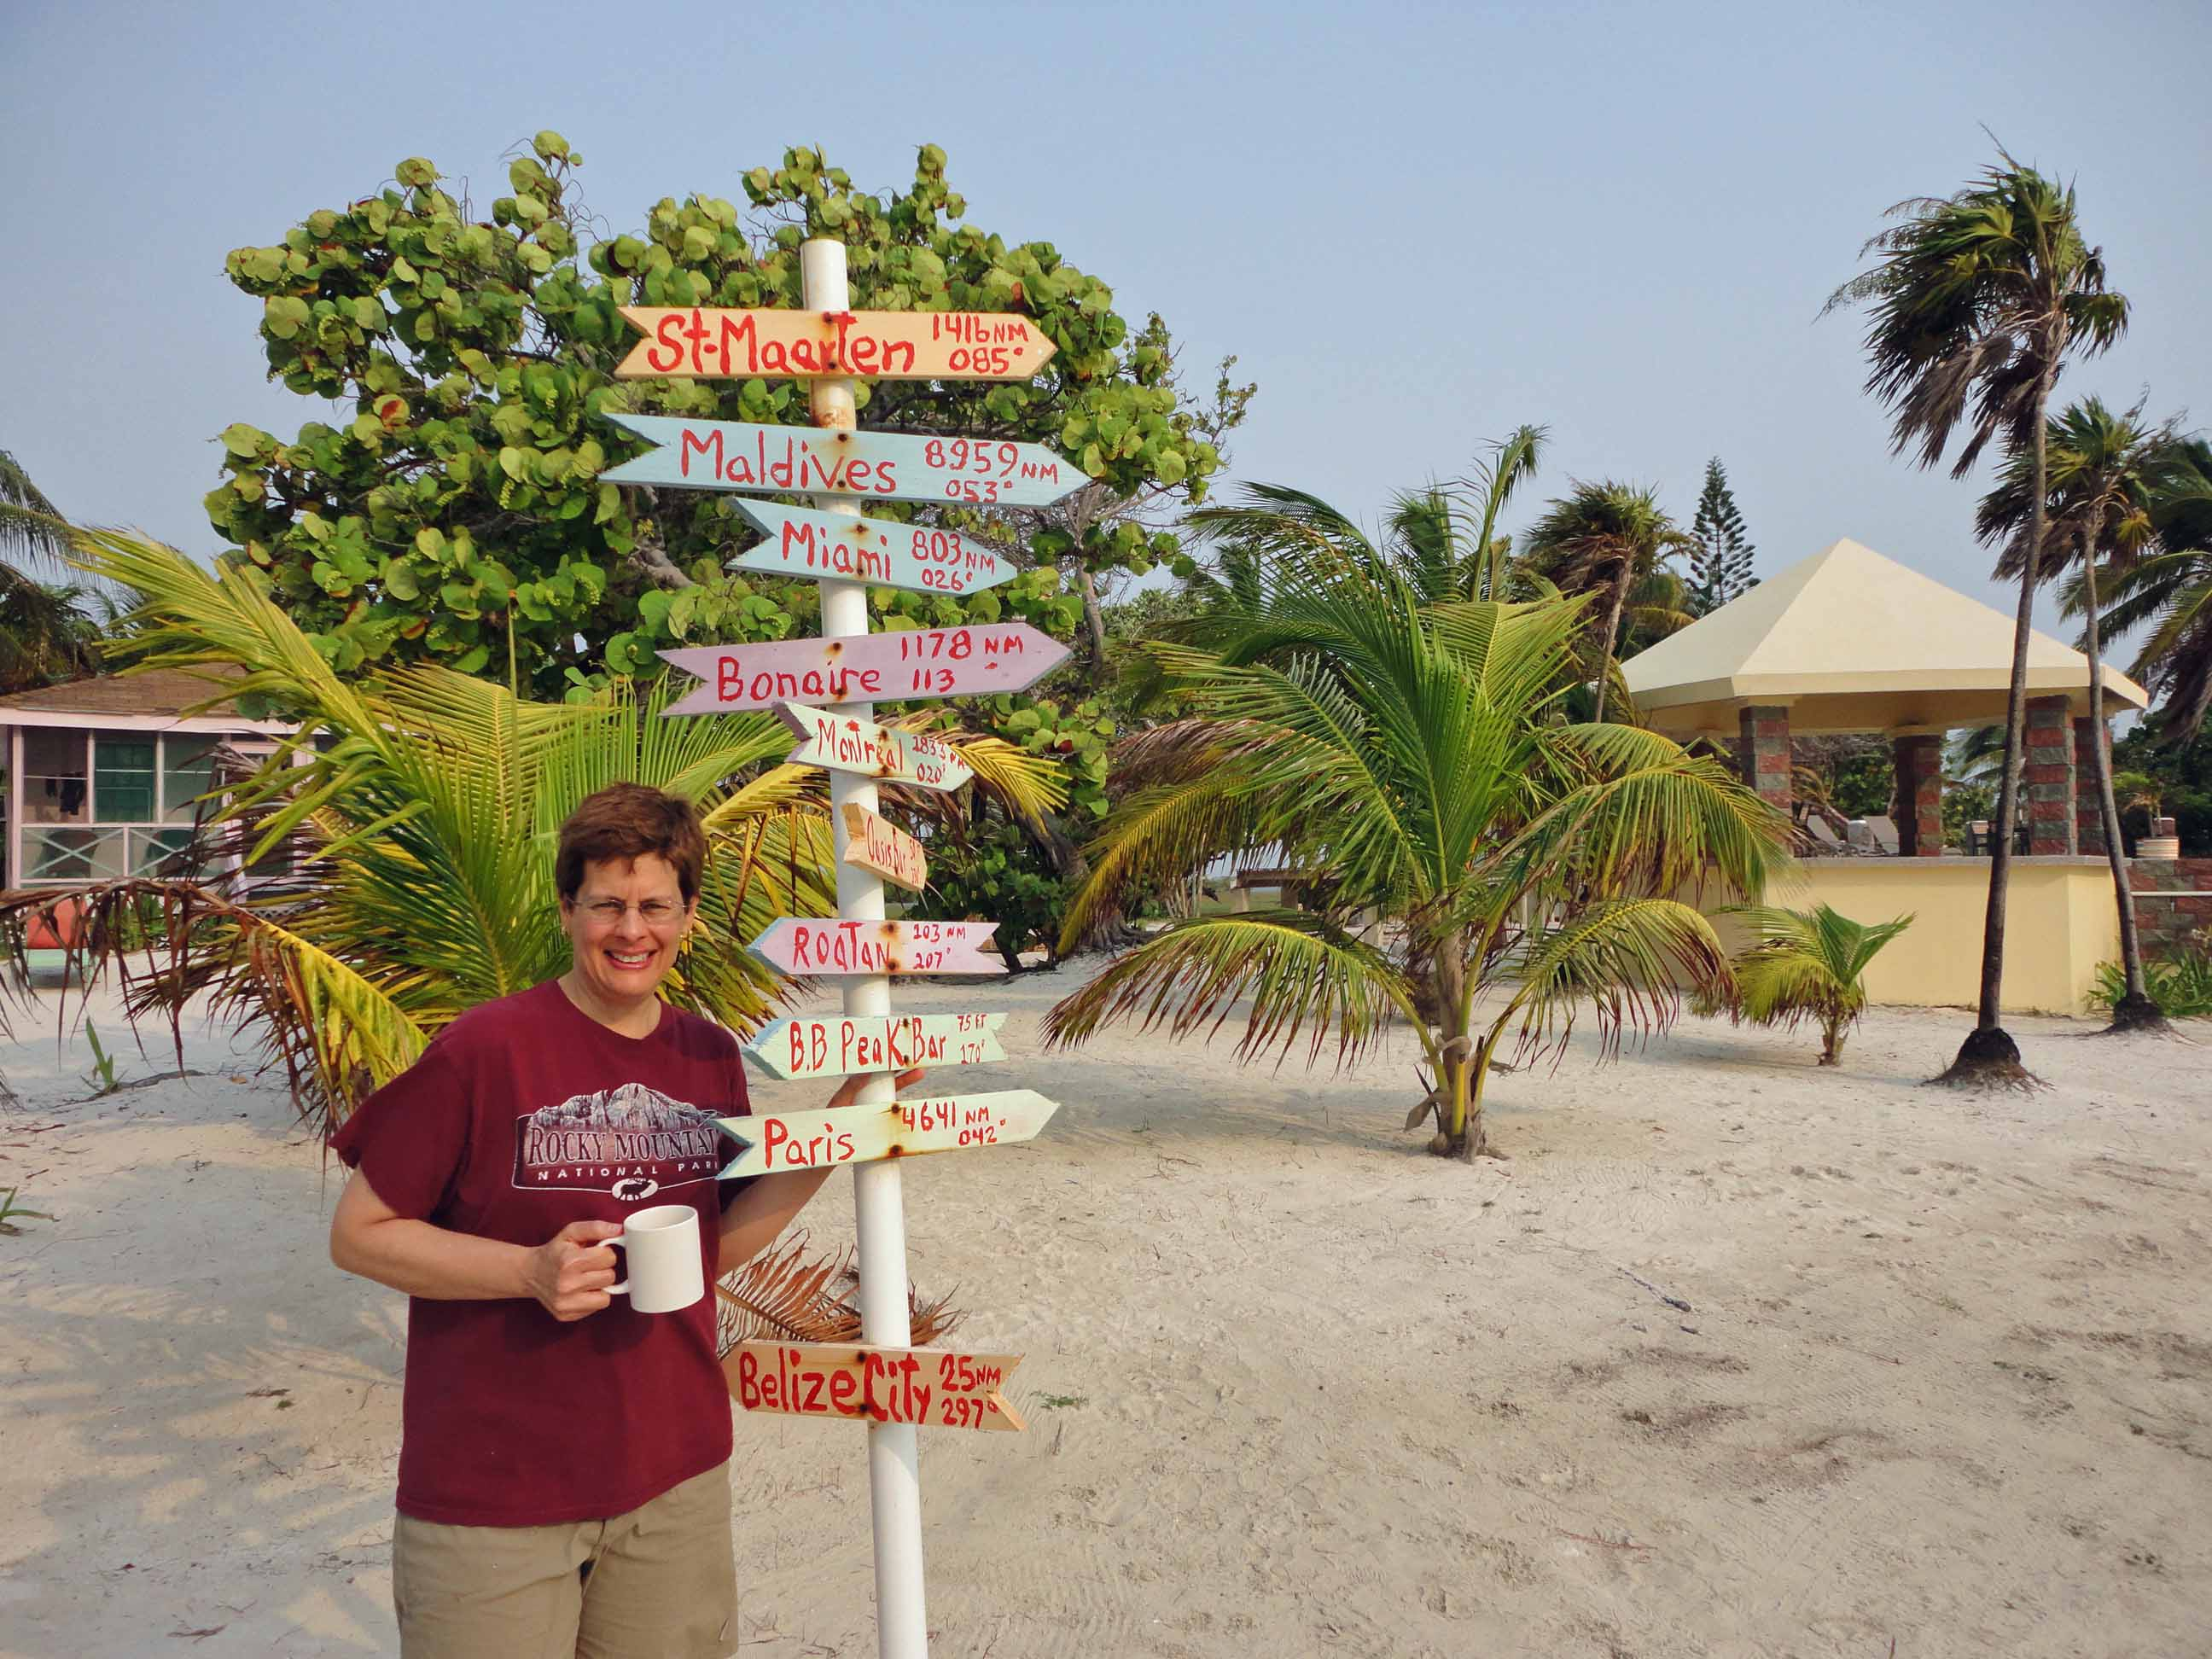 Robin, sign post, Blackbird Caye Resort, Turneffe Atoll, Belize